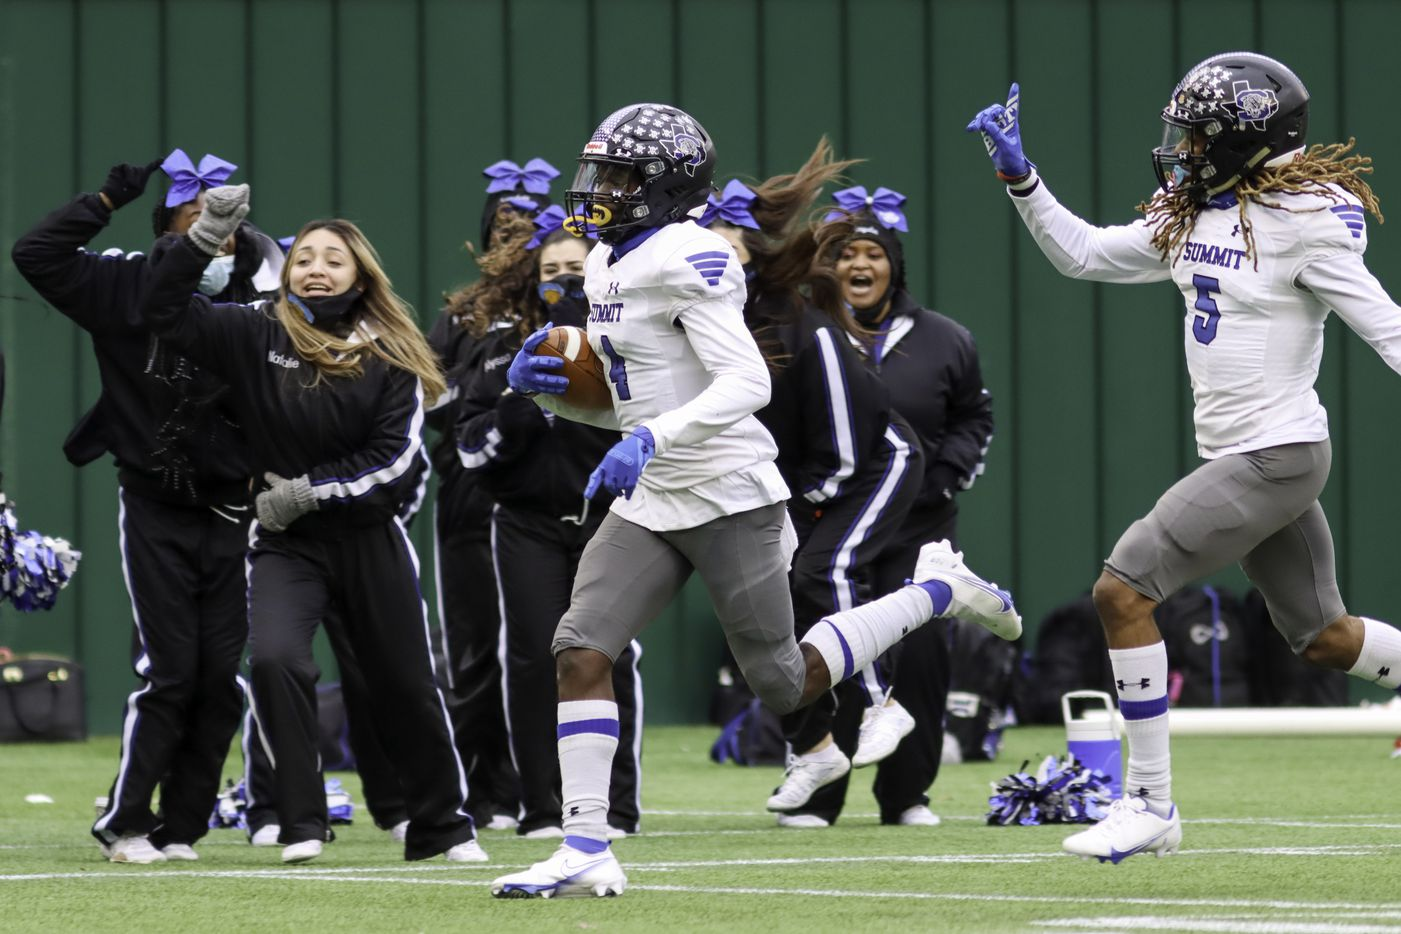 Mansfield Summit defensive back Jalon Rock (4) returns a kickoff for a touchdown alongside defensive back Sean Smith (5) during the second half against Red Oak at Globe Life Park in Arlington, Texas, Friday, Jan. 1, 2021. (Elias Valverde II / Special Contributor)